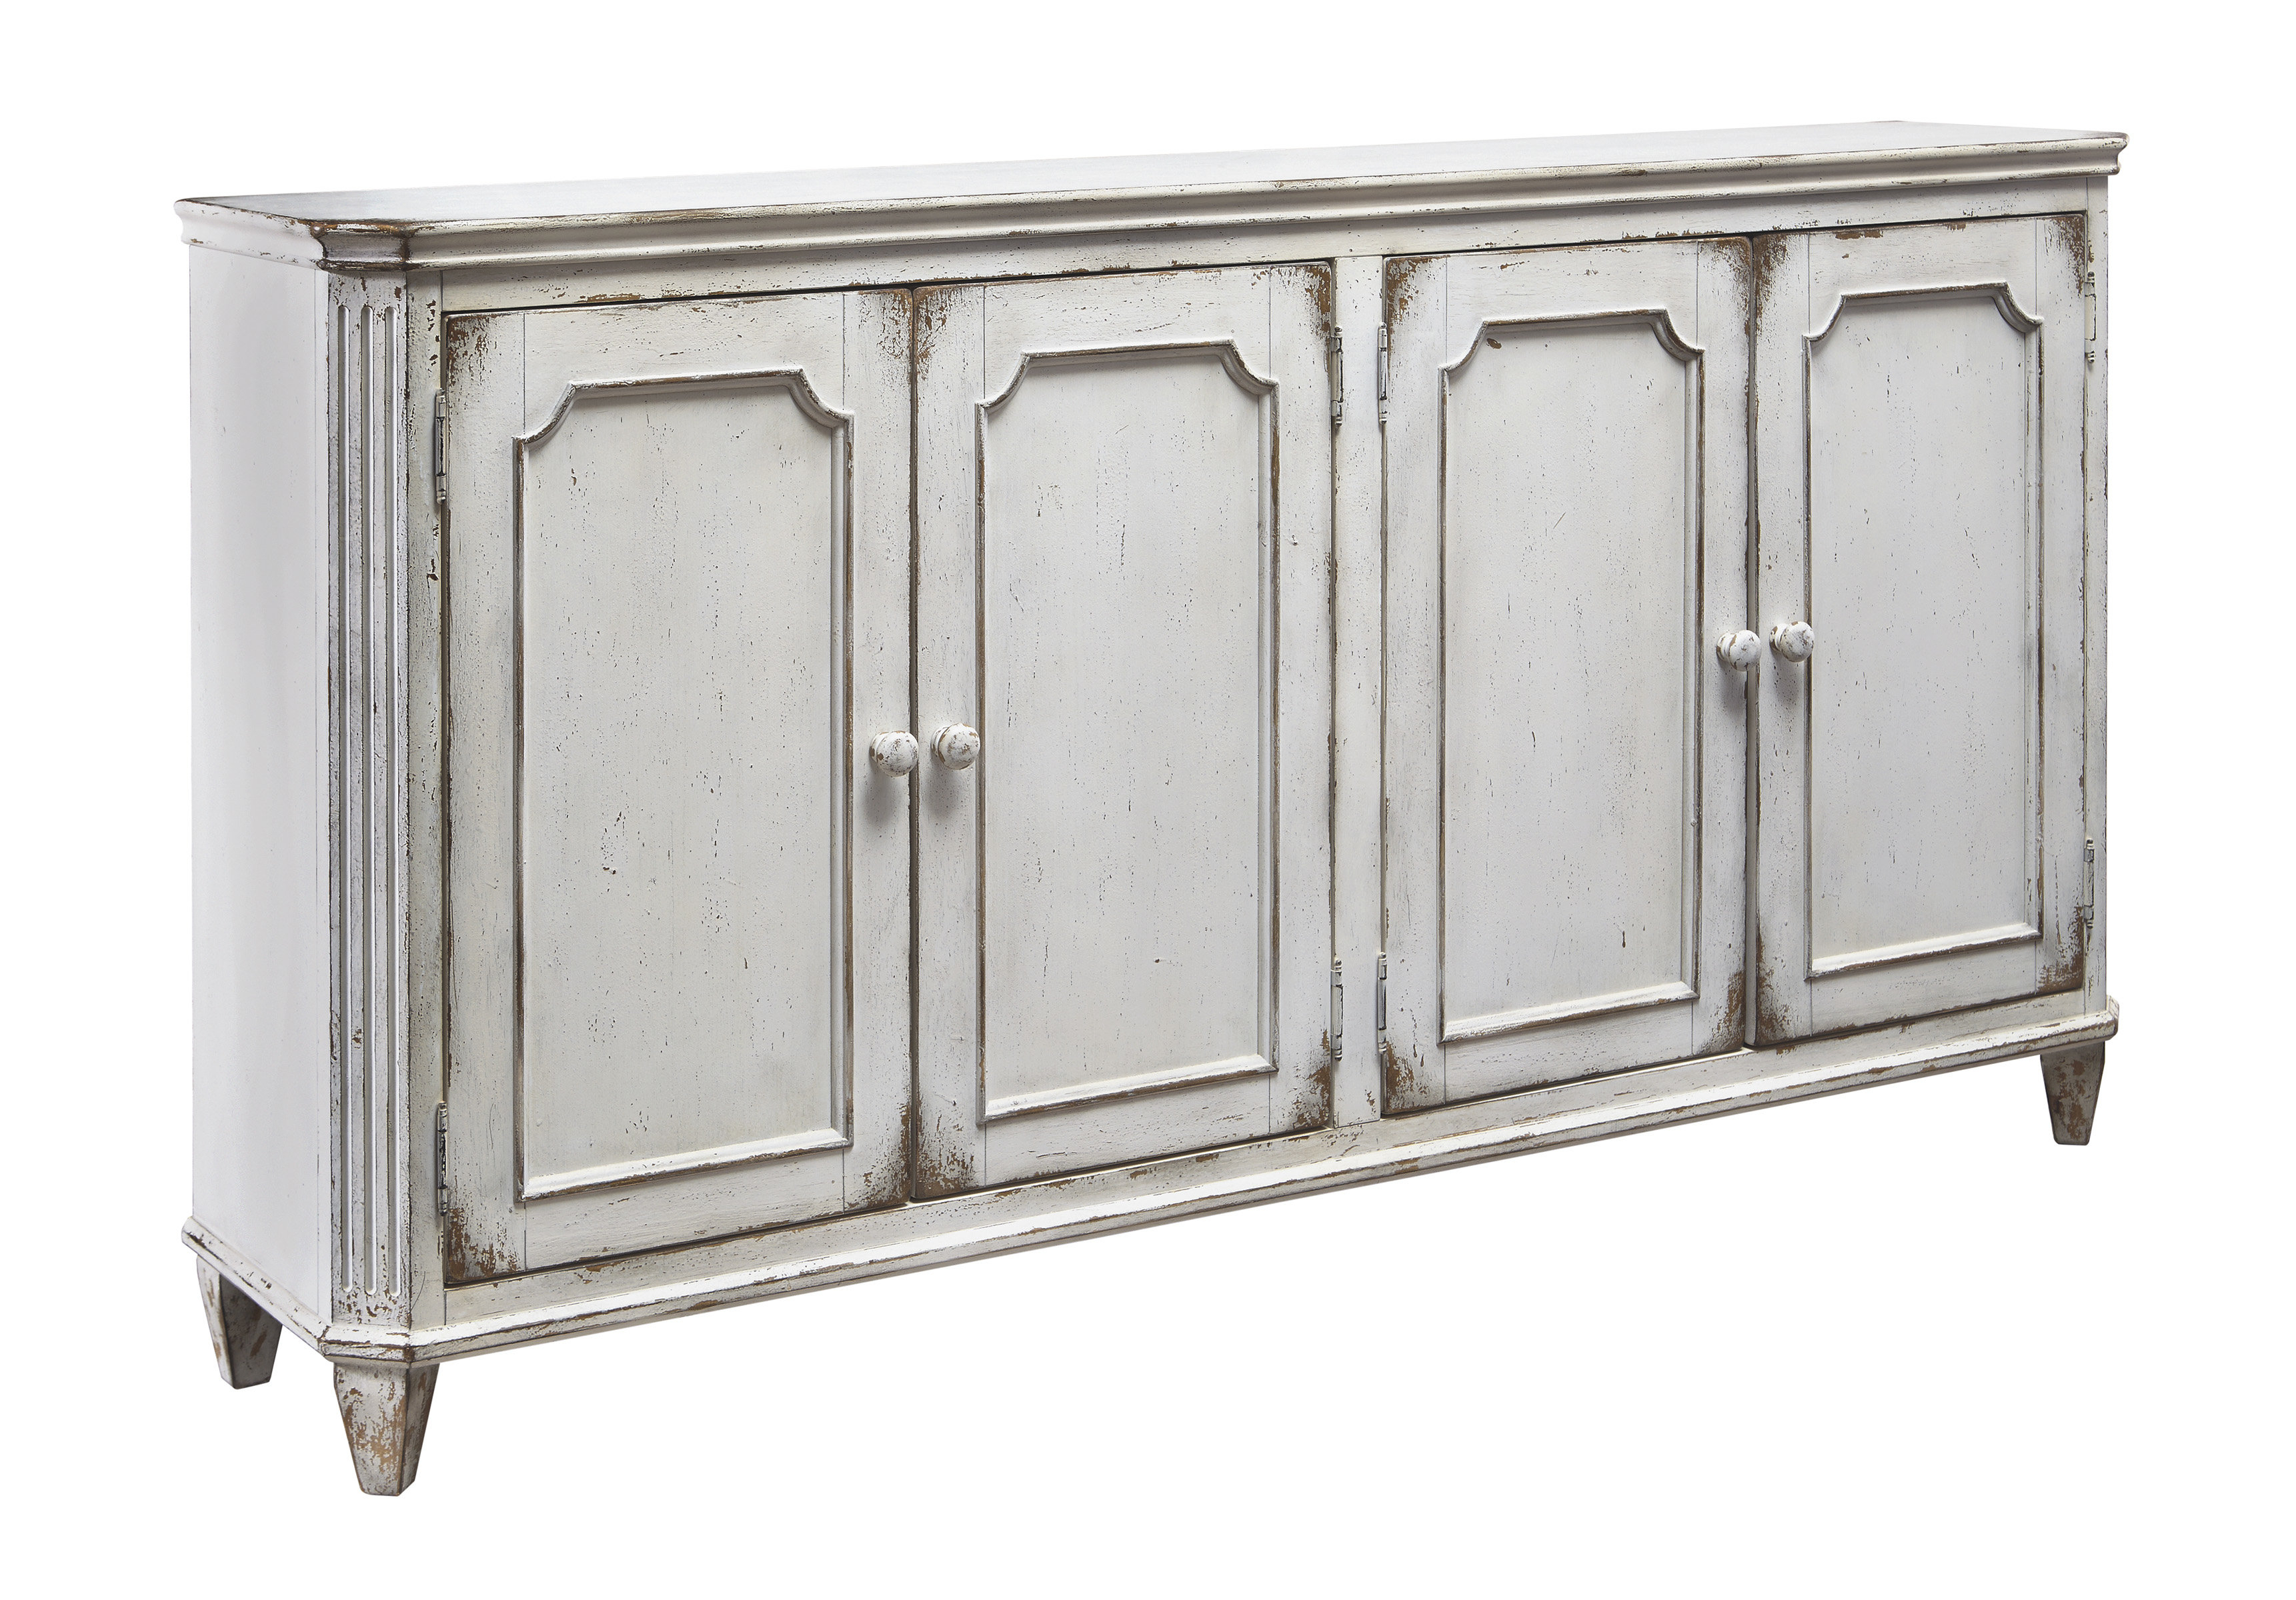 Nilles 4 Door Accent Cabinet & Reviews | Joss & Main inside Chicoree Charlena Sideboards (Image 17 of 30)